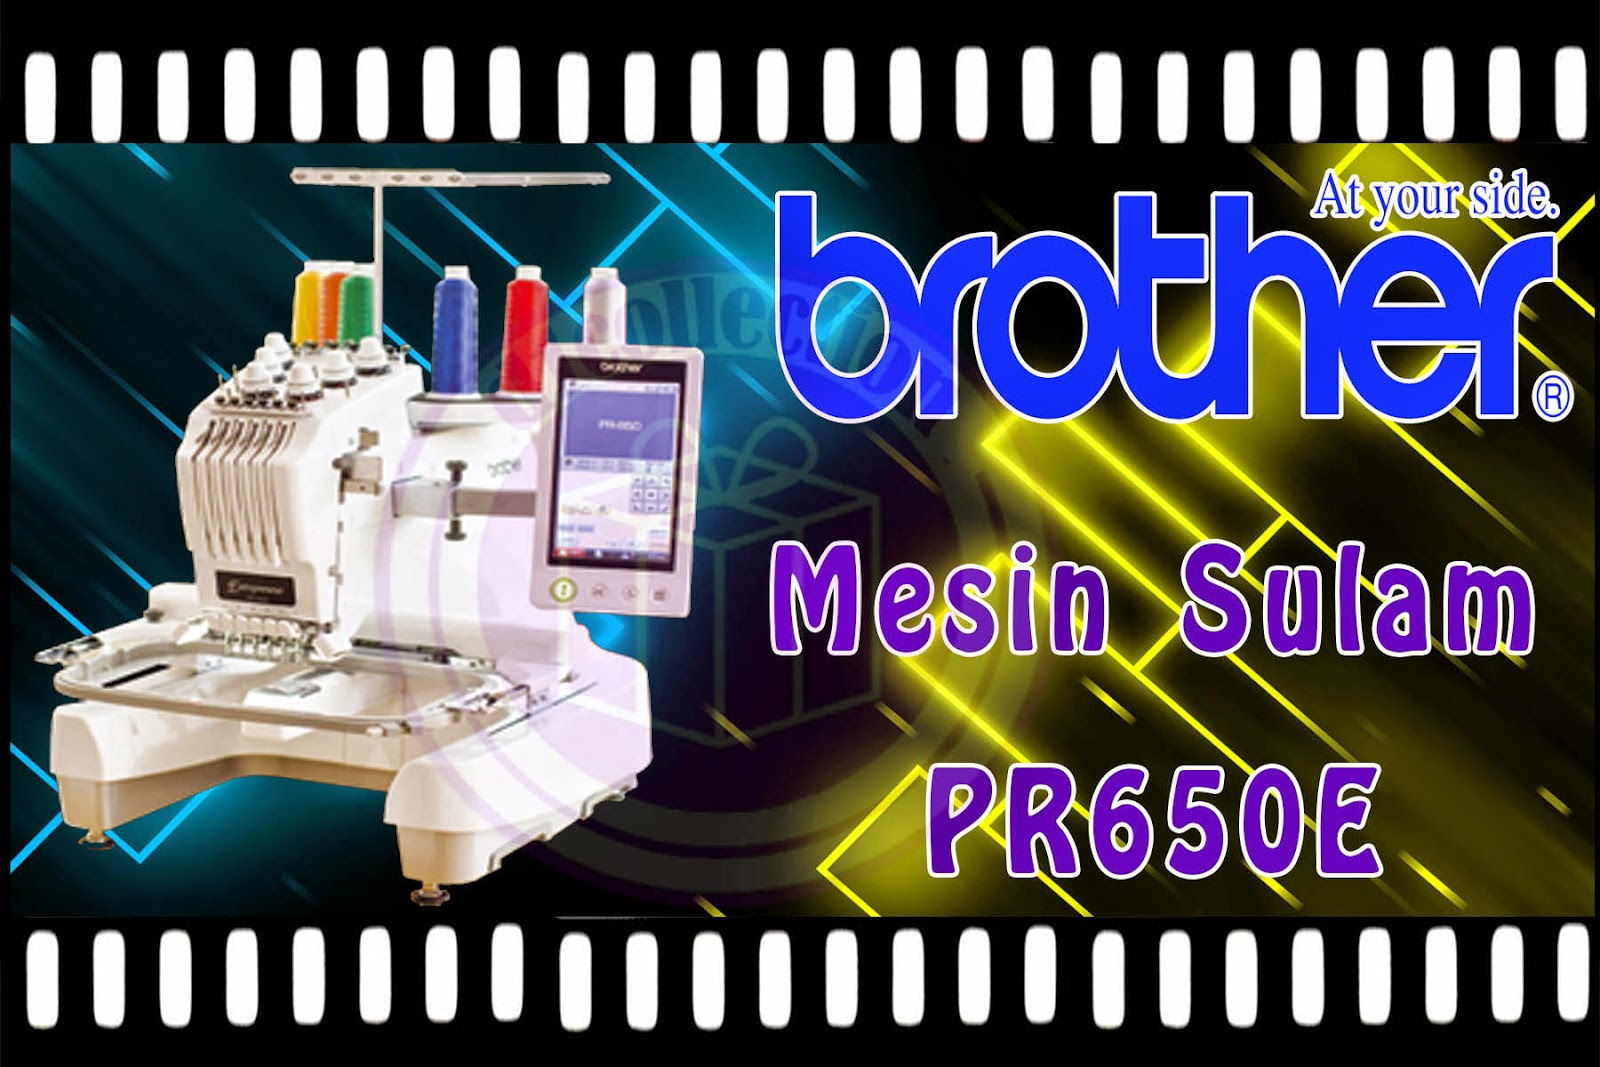 http://d1embroidery.blogspot.com/search/label/Mesin%20Sulam%20PR650e